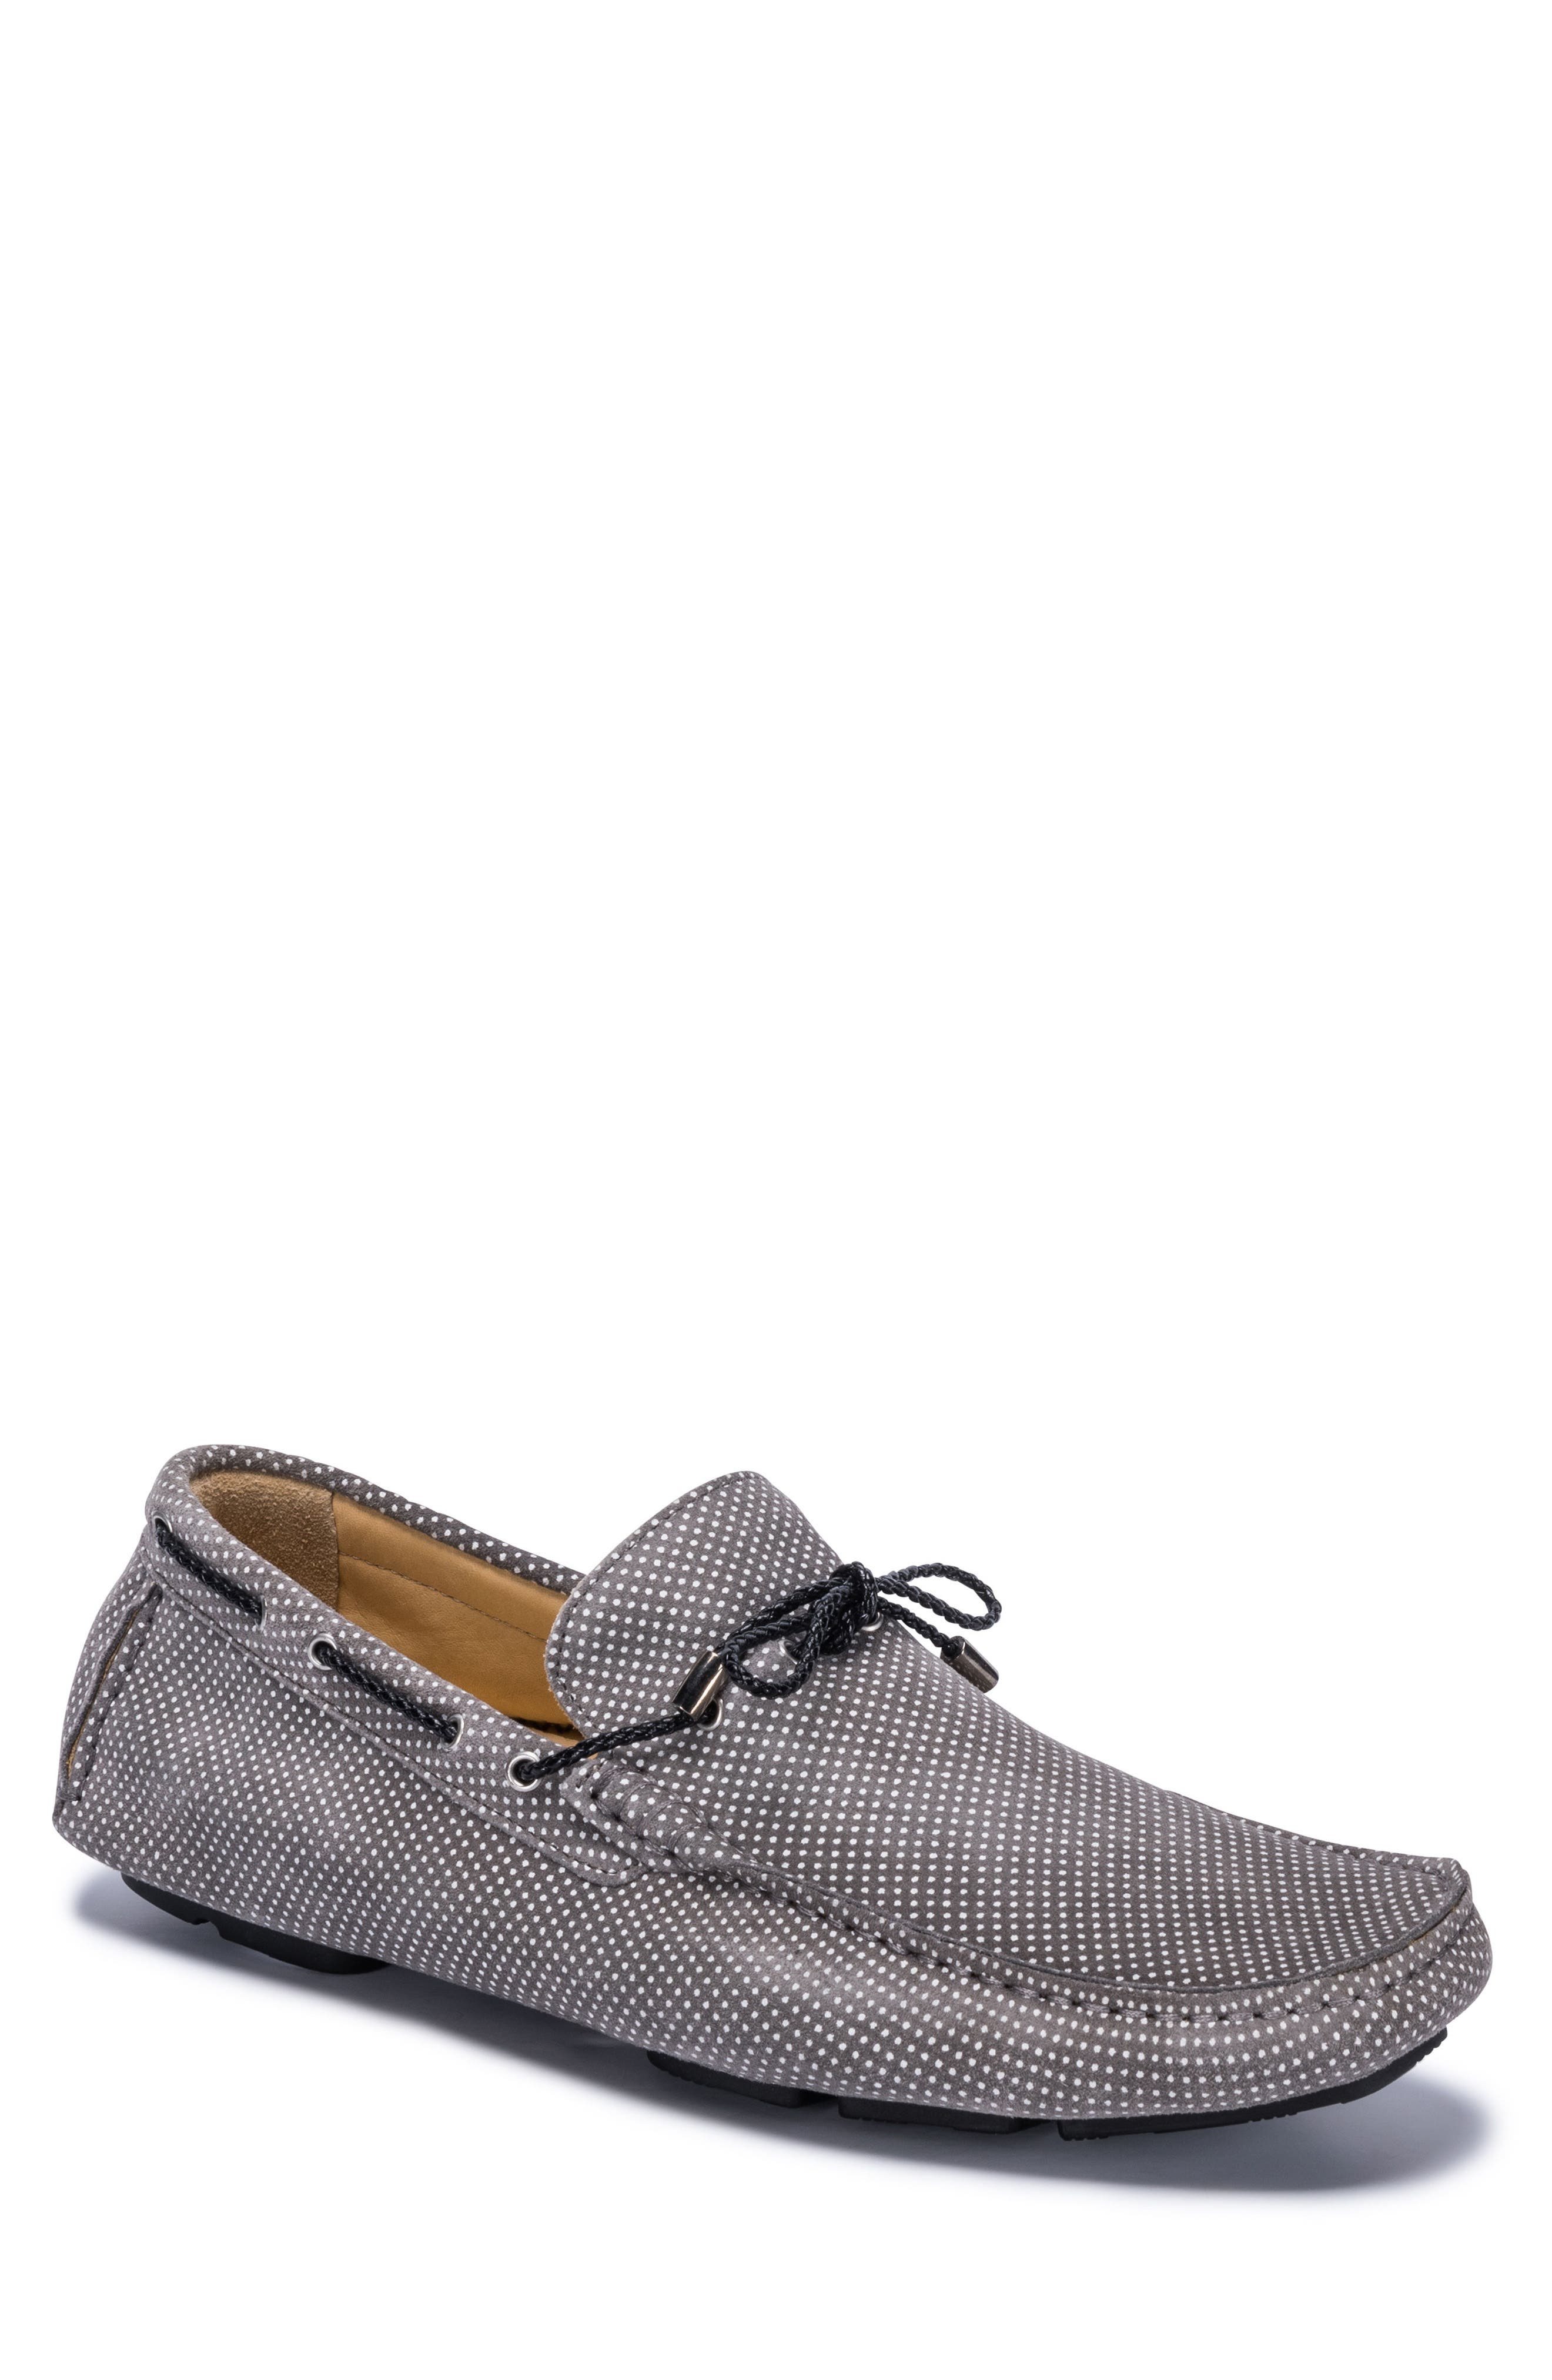 Sanremo Patterned Driving Loafer,                             Main thumbnail 1, color,                             GREY SUEDE